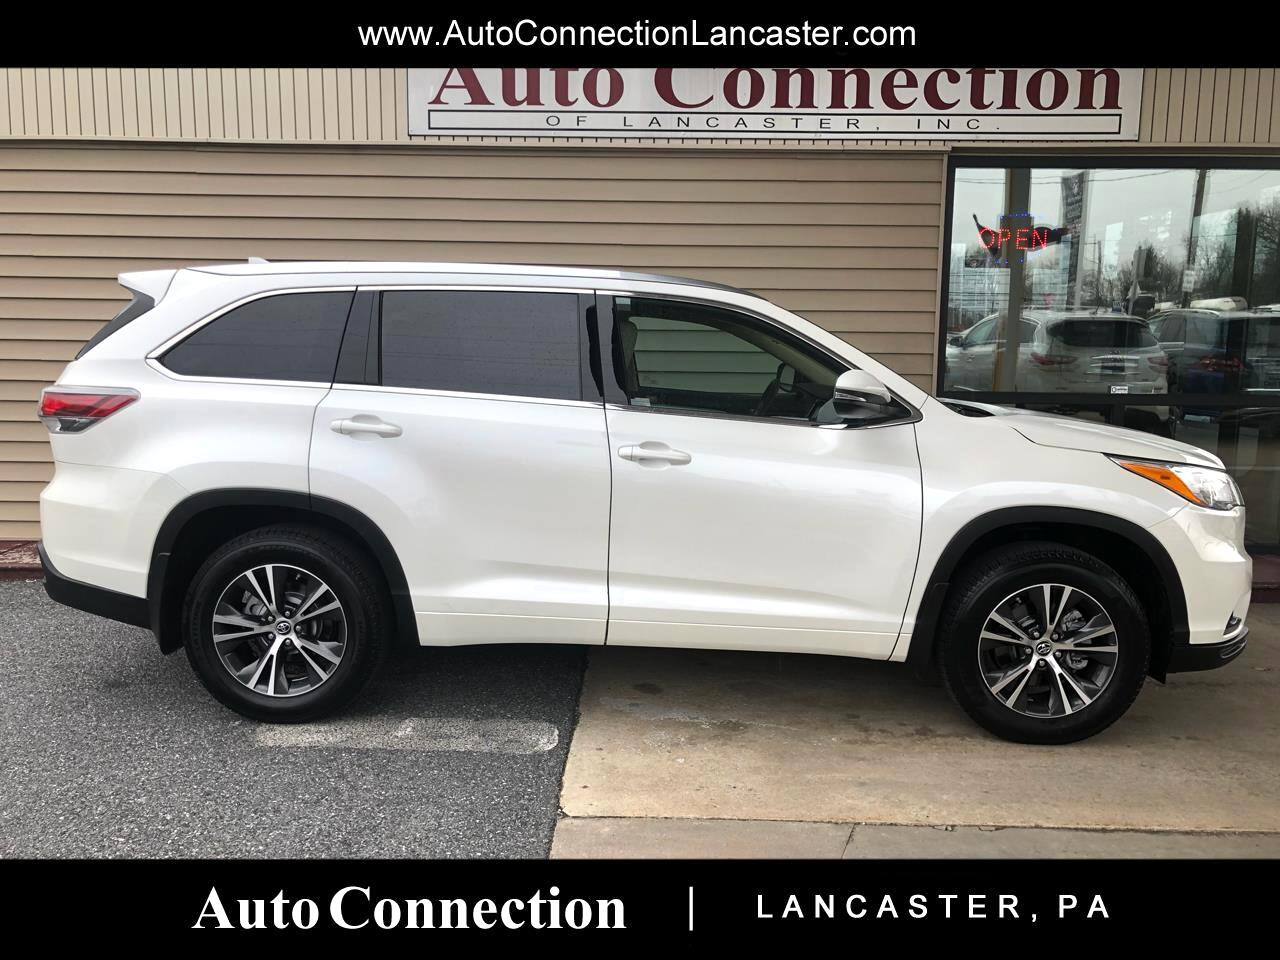 Toyota Lancaster Pa >> Used 2016 Toyota Highlander Awd 4dr V6 Xle Natl For Sale In